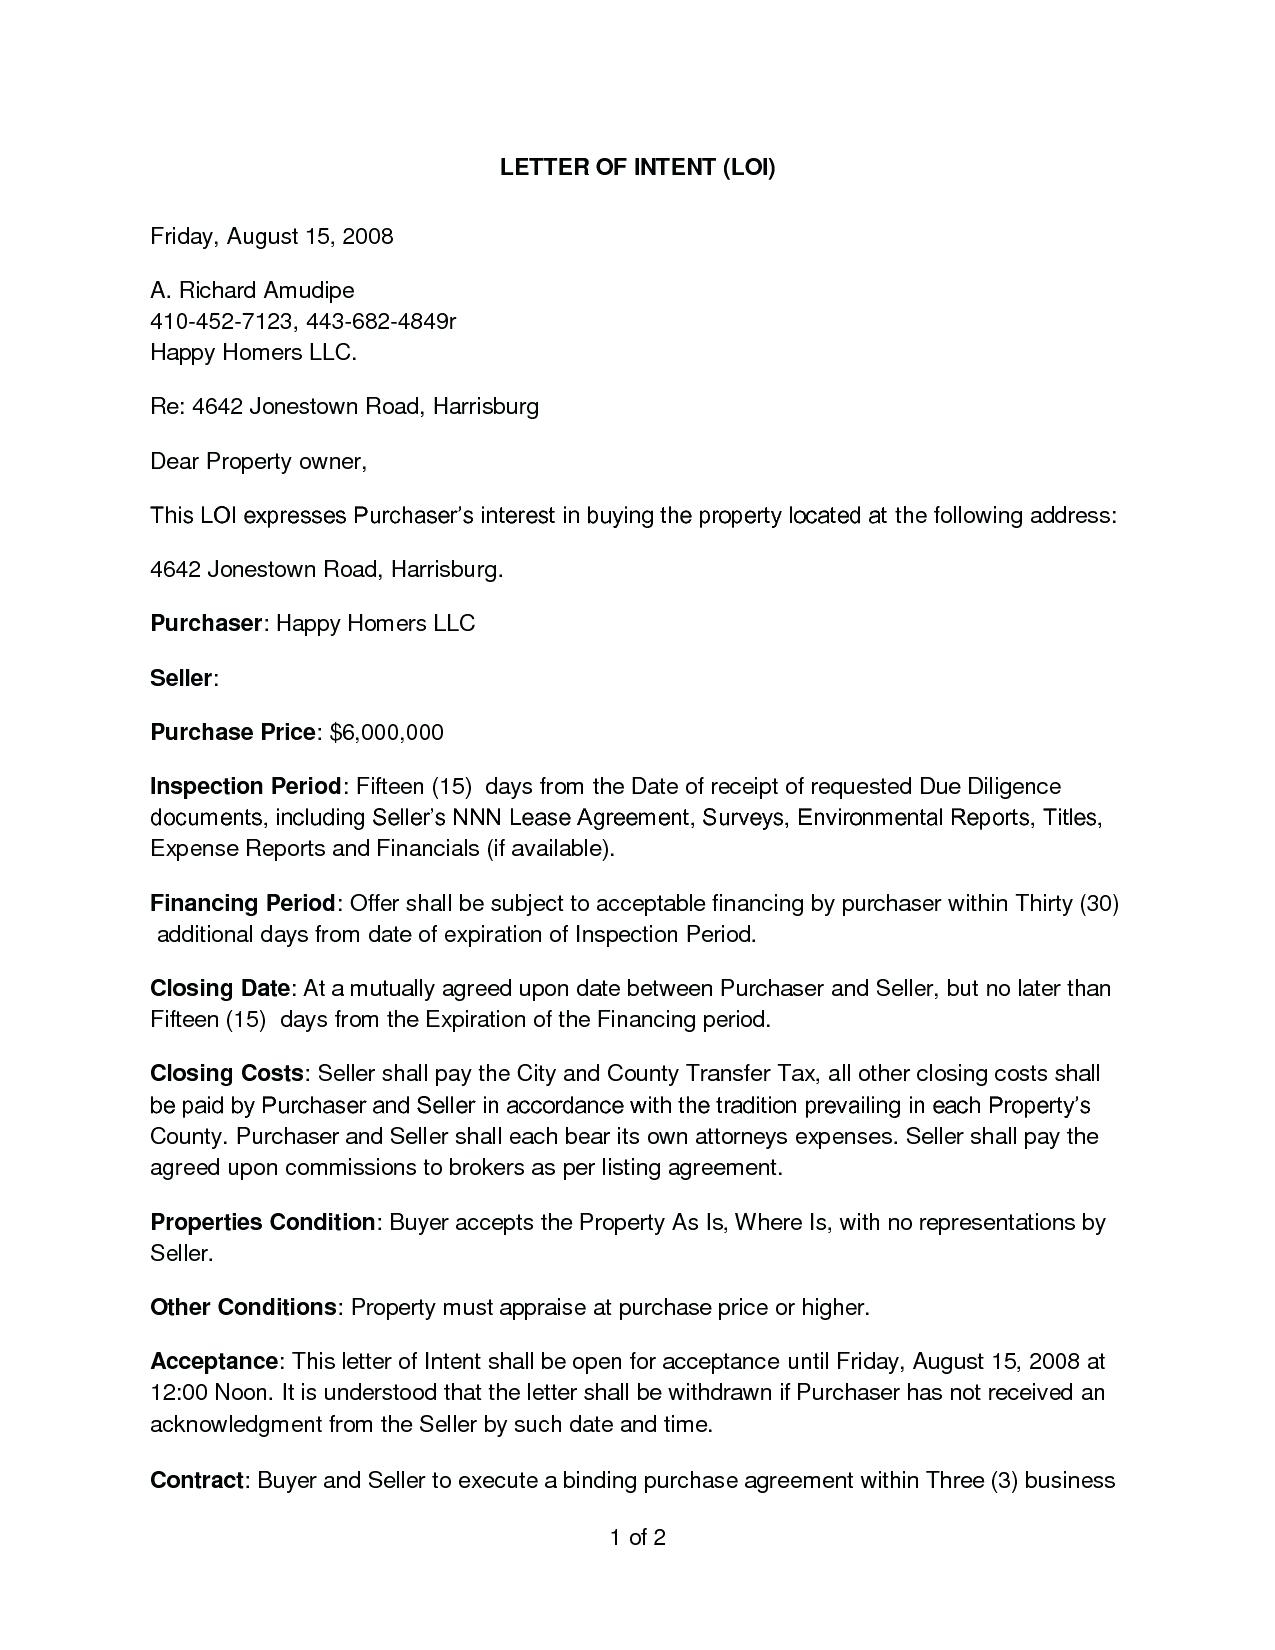 Letter Of Intent to Purchase Equipment Template - Letter Intent to Purchase Template Agreement Real Estate